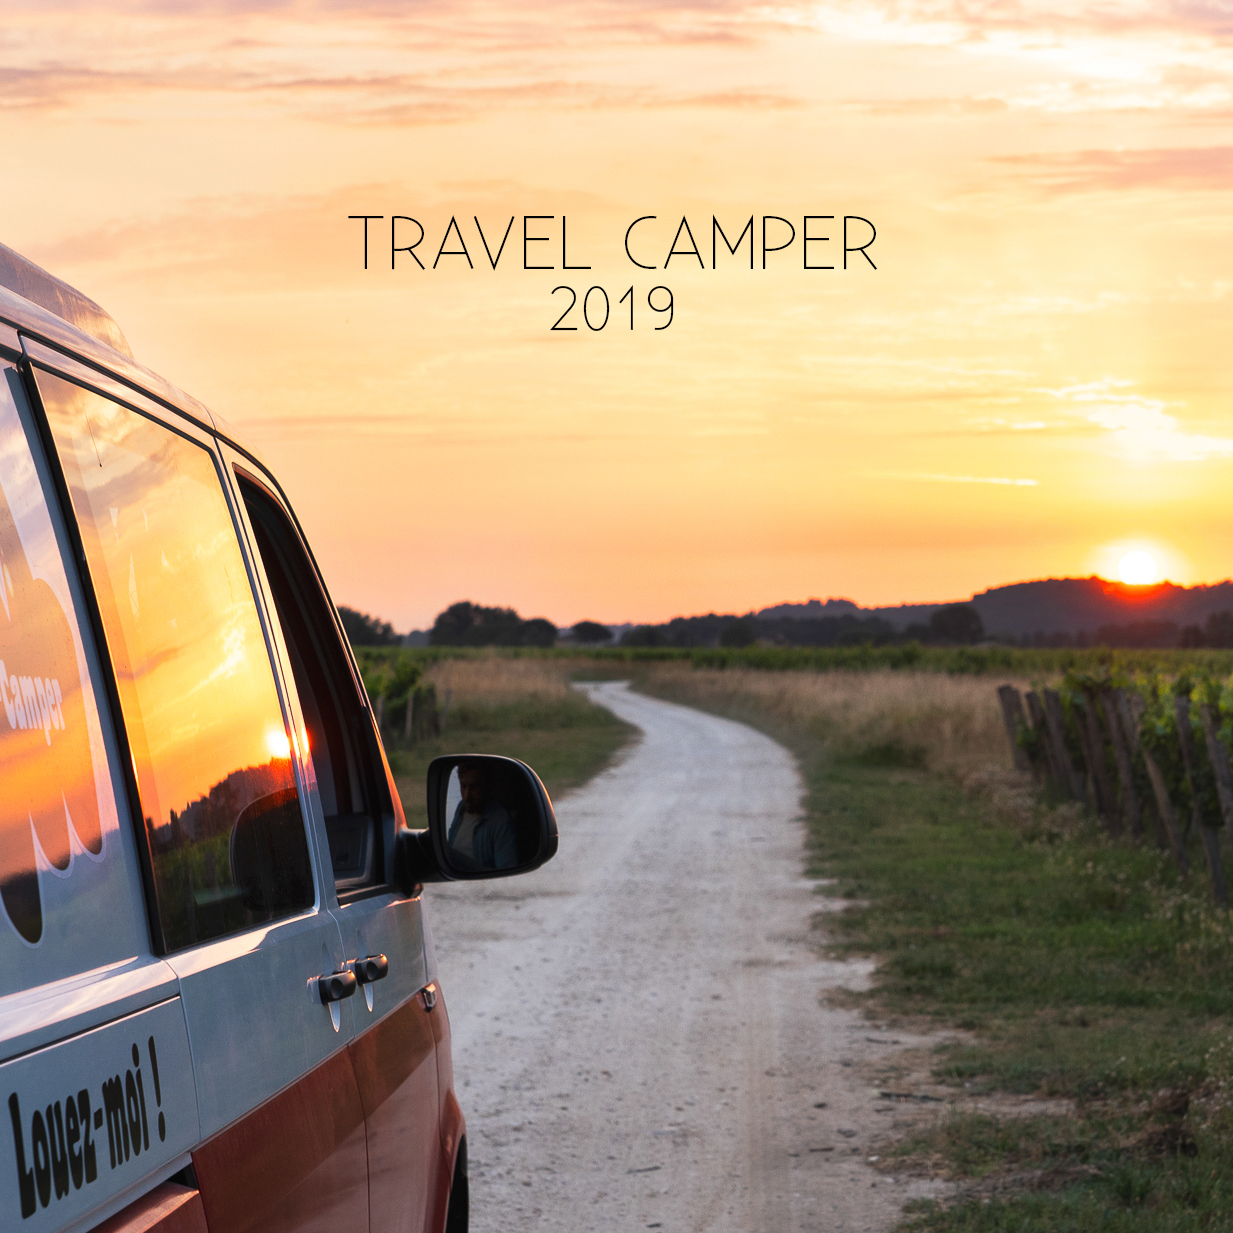 Travel Camper - photographie tourisme local - France